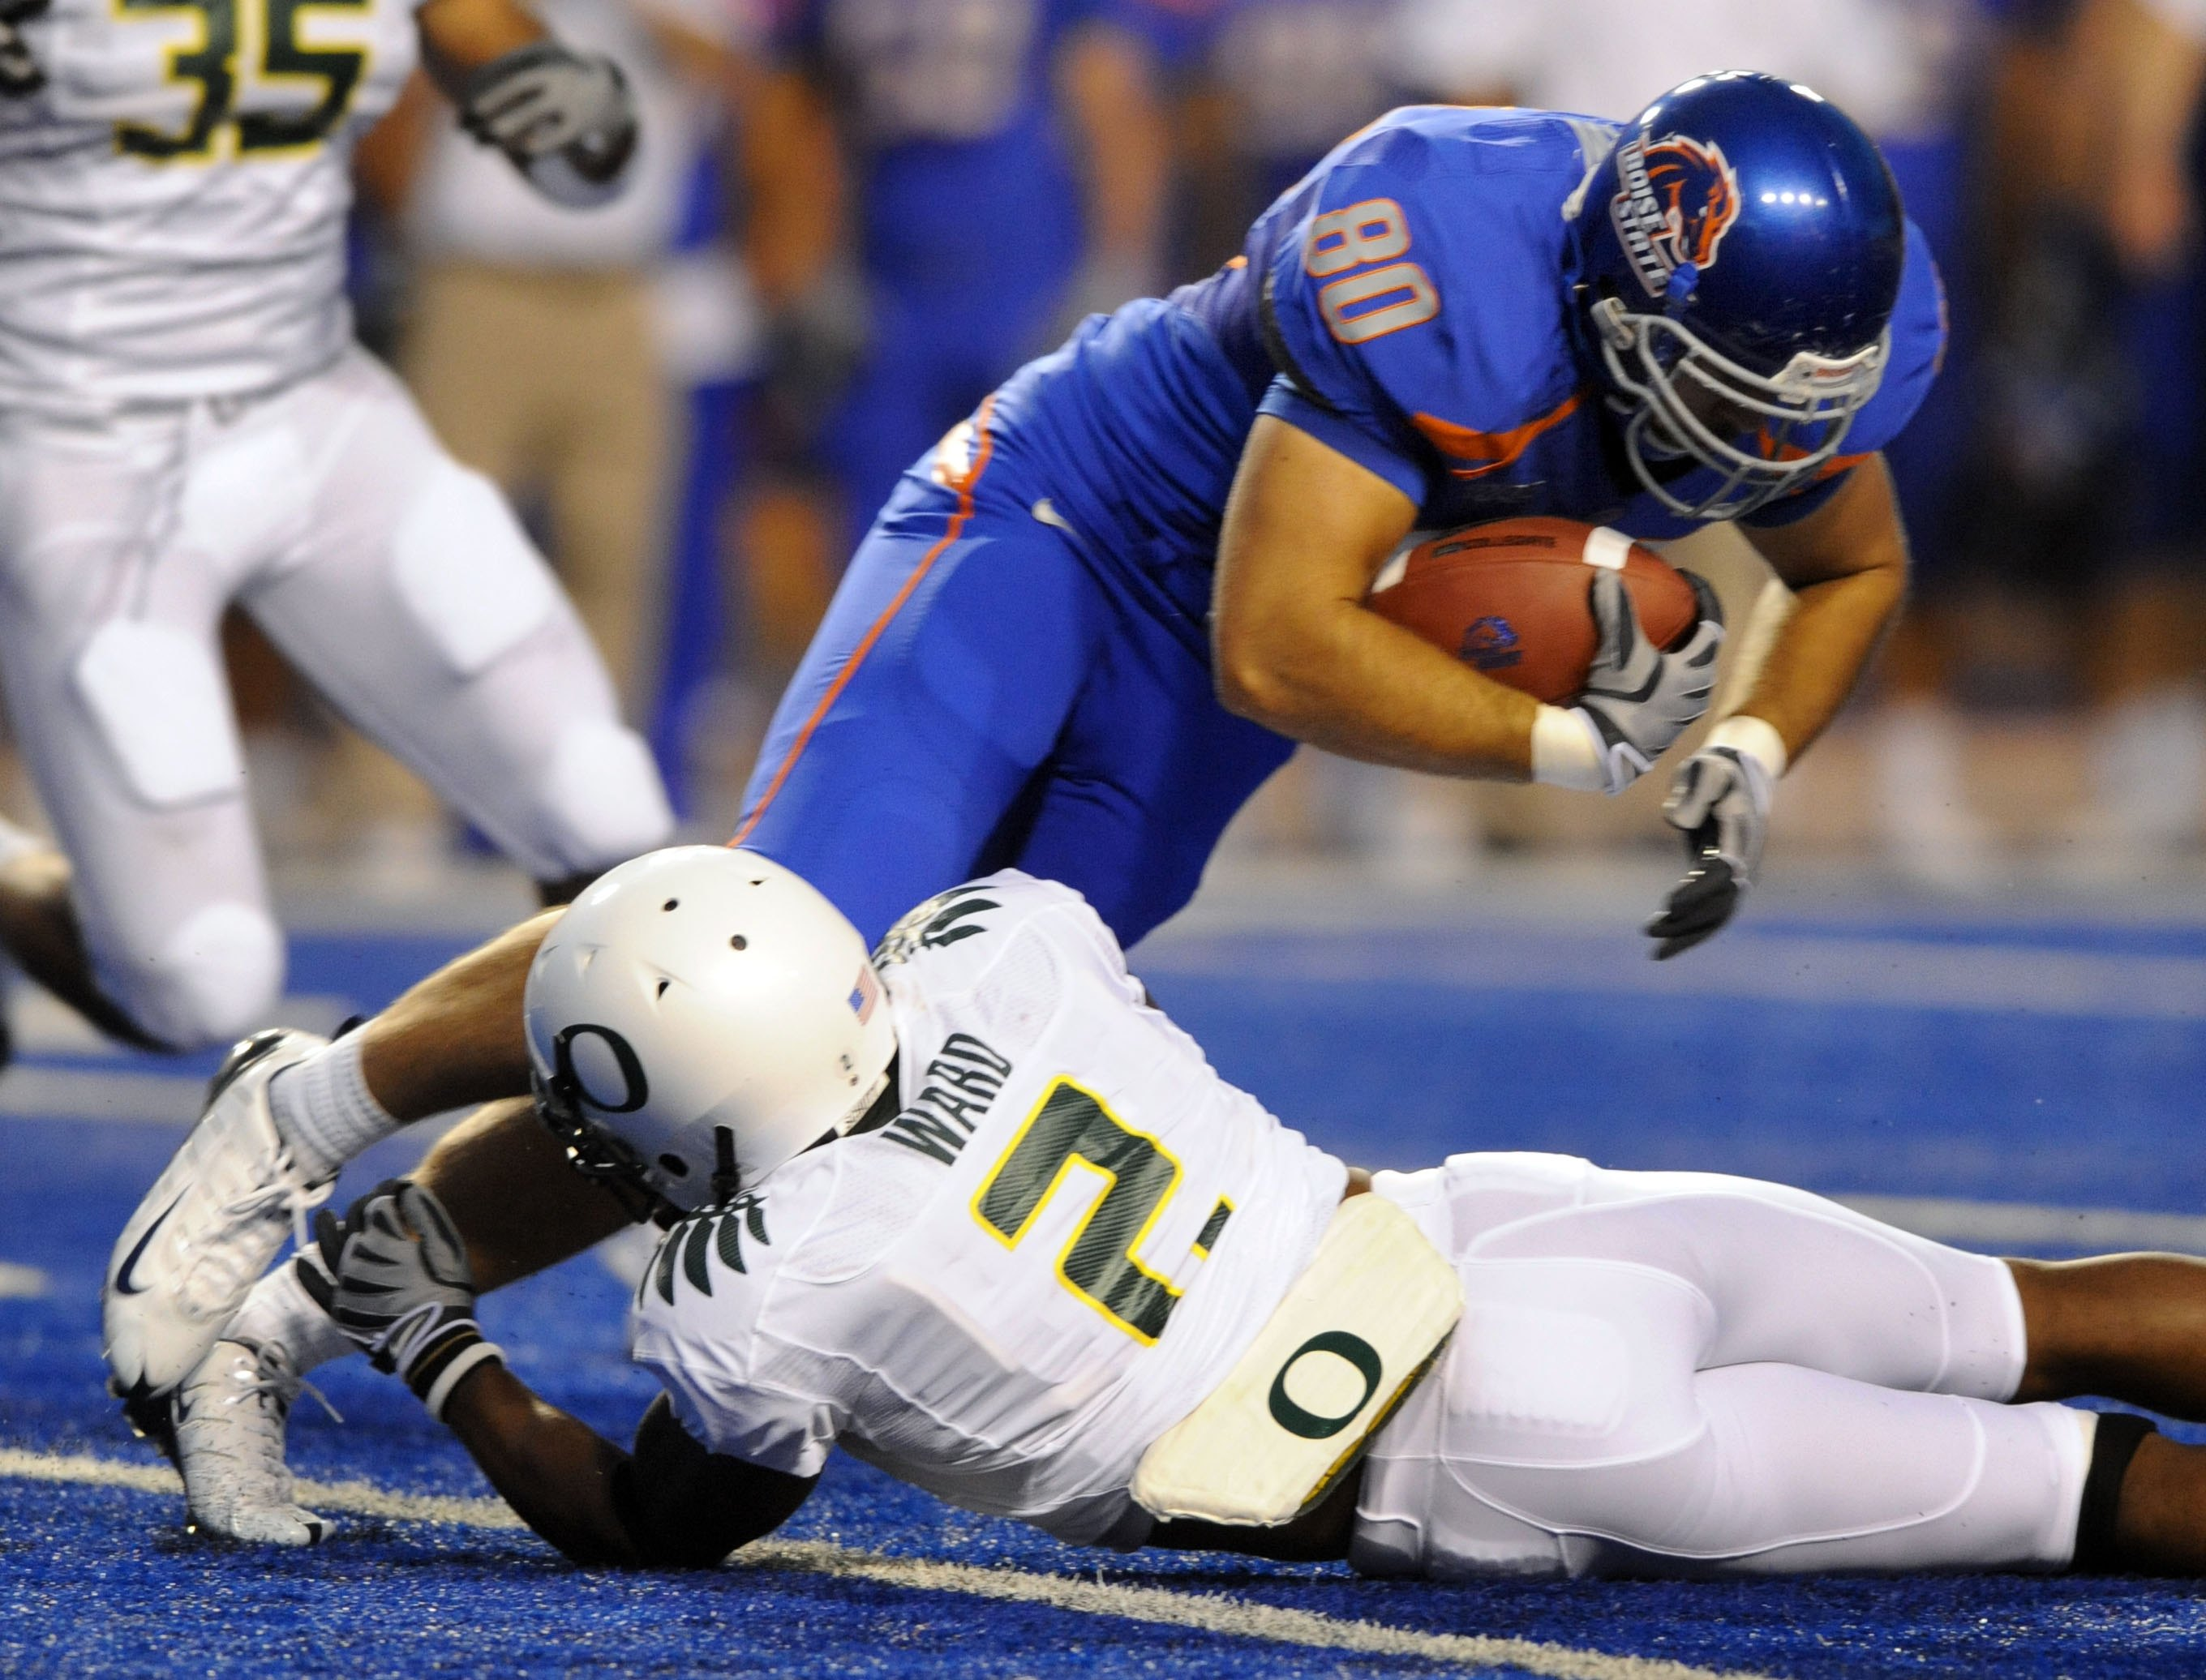 BOISE, ID - SEPTEMBER 3: Safety T.J Ward #2 of the Oregon Ducks  tackles tight end Kyle Efaw #80 of the Boise State Broncos in the second quarter of the game on September 3, 2009 at Bronco Stadium in Boise, Idaho. Boise State won the game 19-8. (Photo by